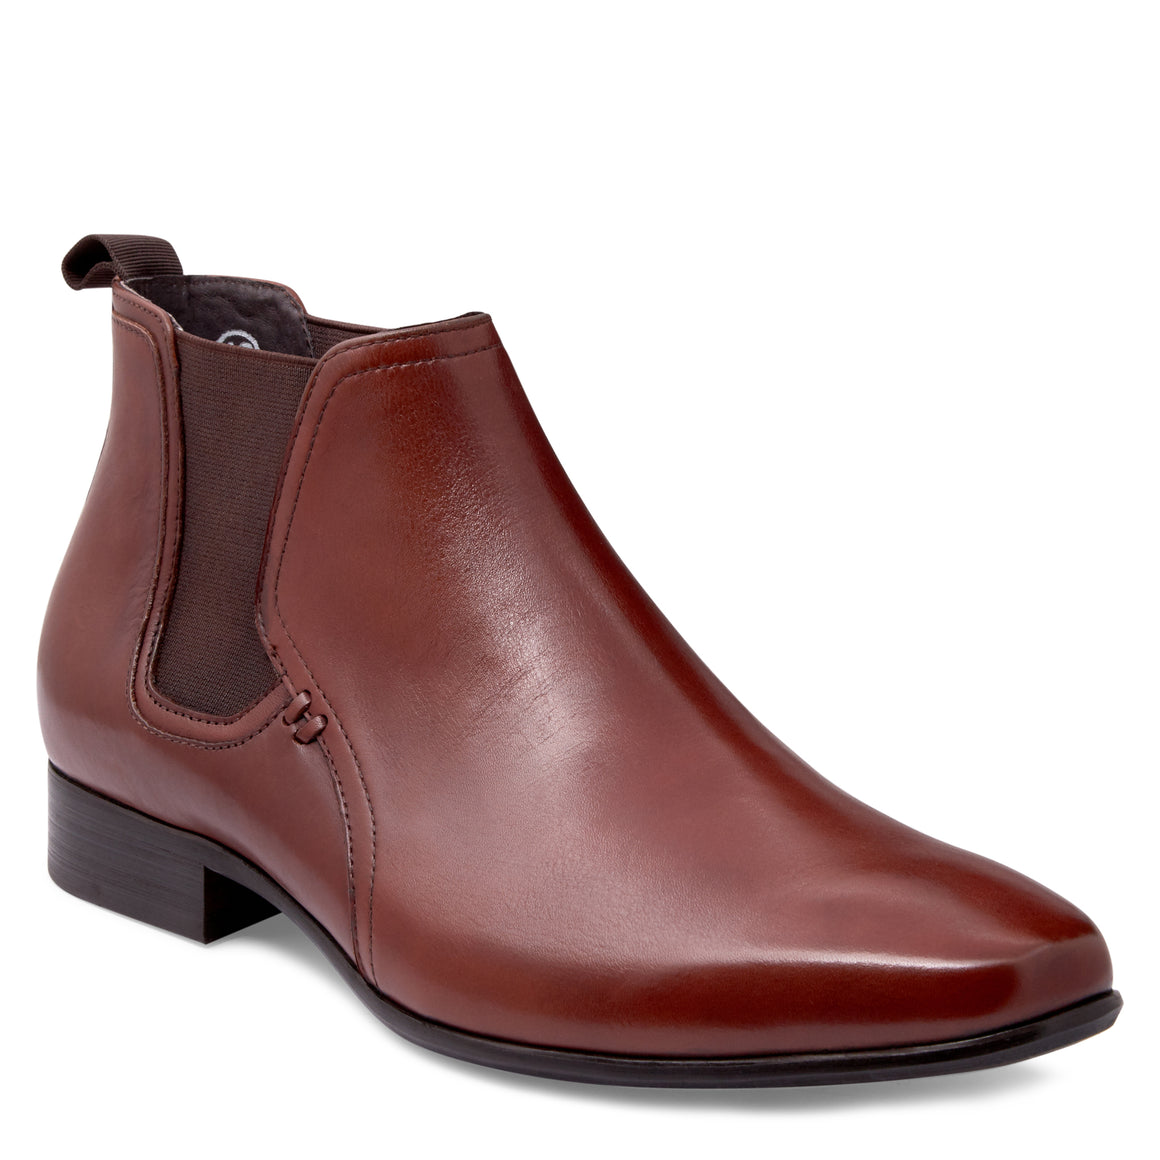 Jackson Whiskey Chelsea Boots